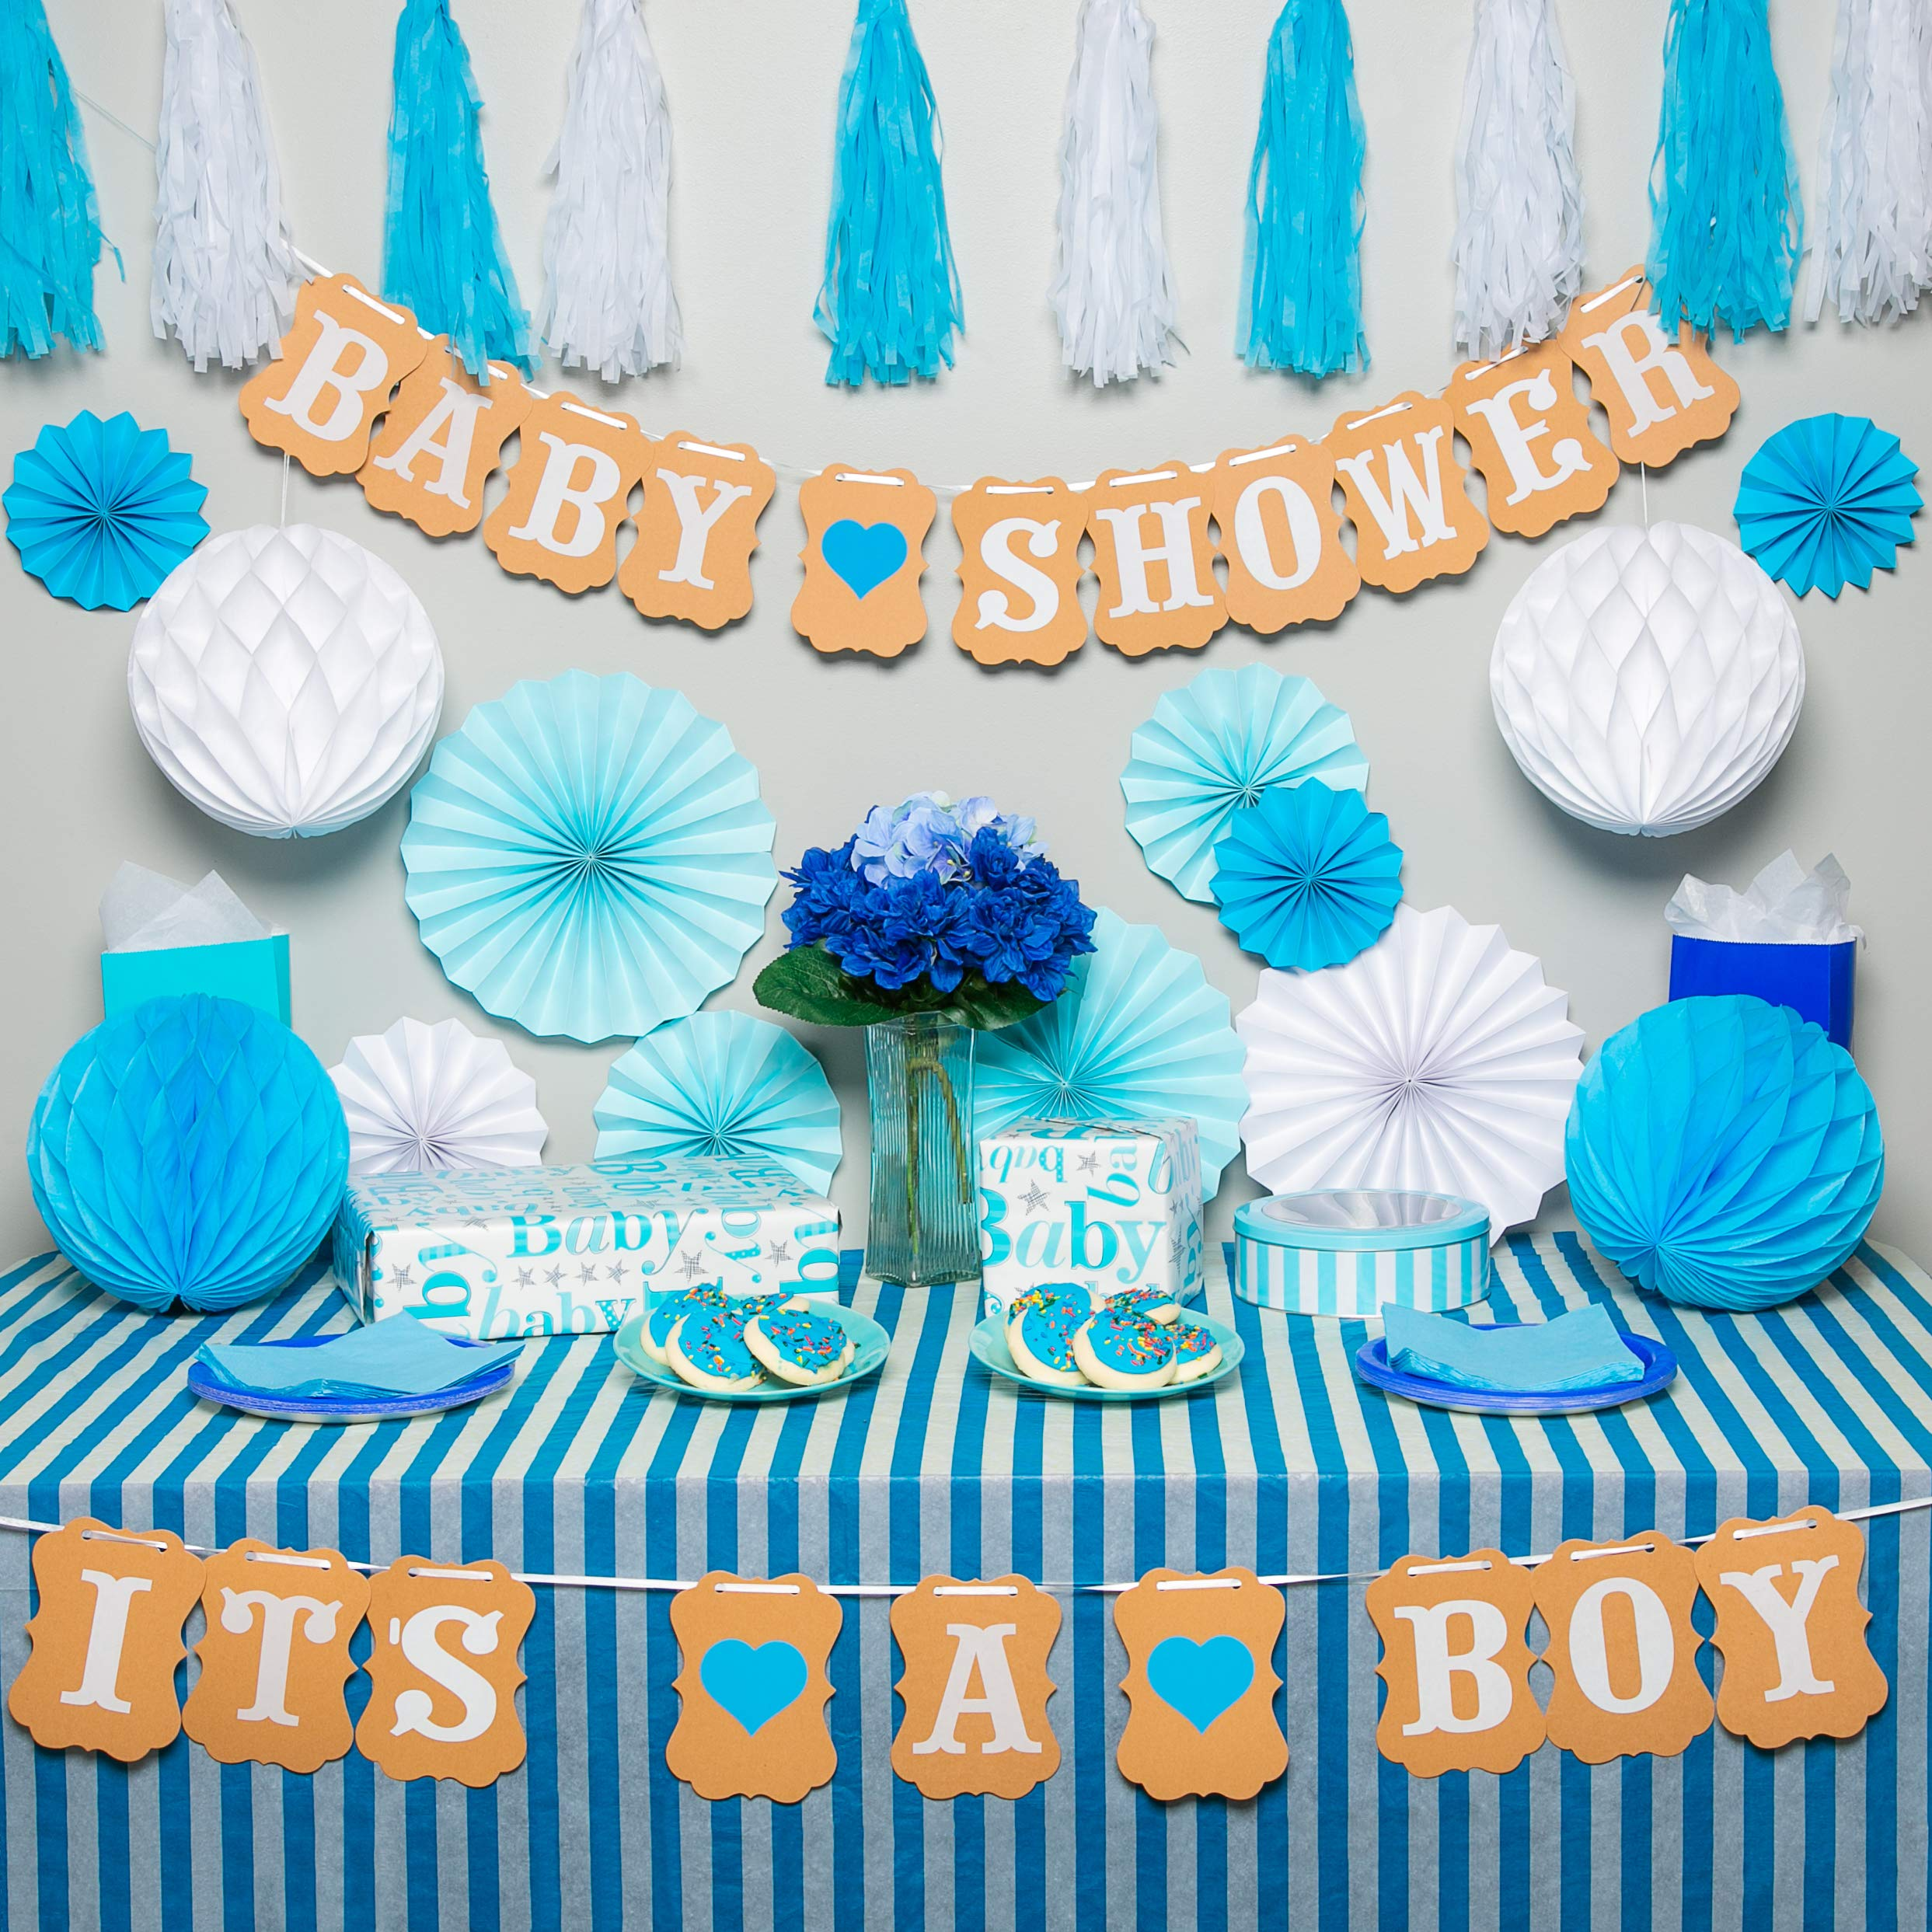 Premium baby shower decorations for boy Kit | It's a boy baby shower decorations with striped tablecloth, 2 banners, paper fans, and honeycomb balls | complete baby shower set for a beautiful baby boy by TeeMoo (Image #7)